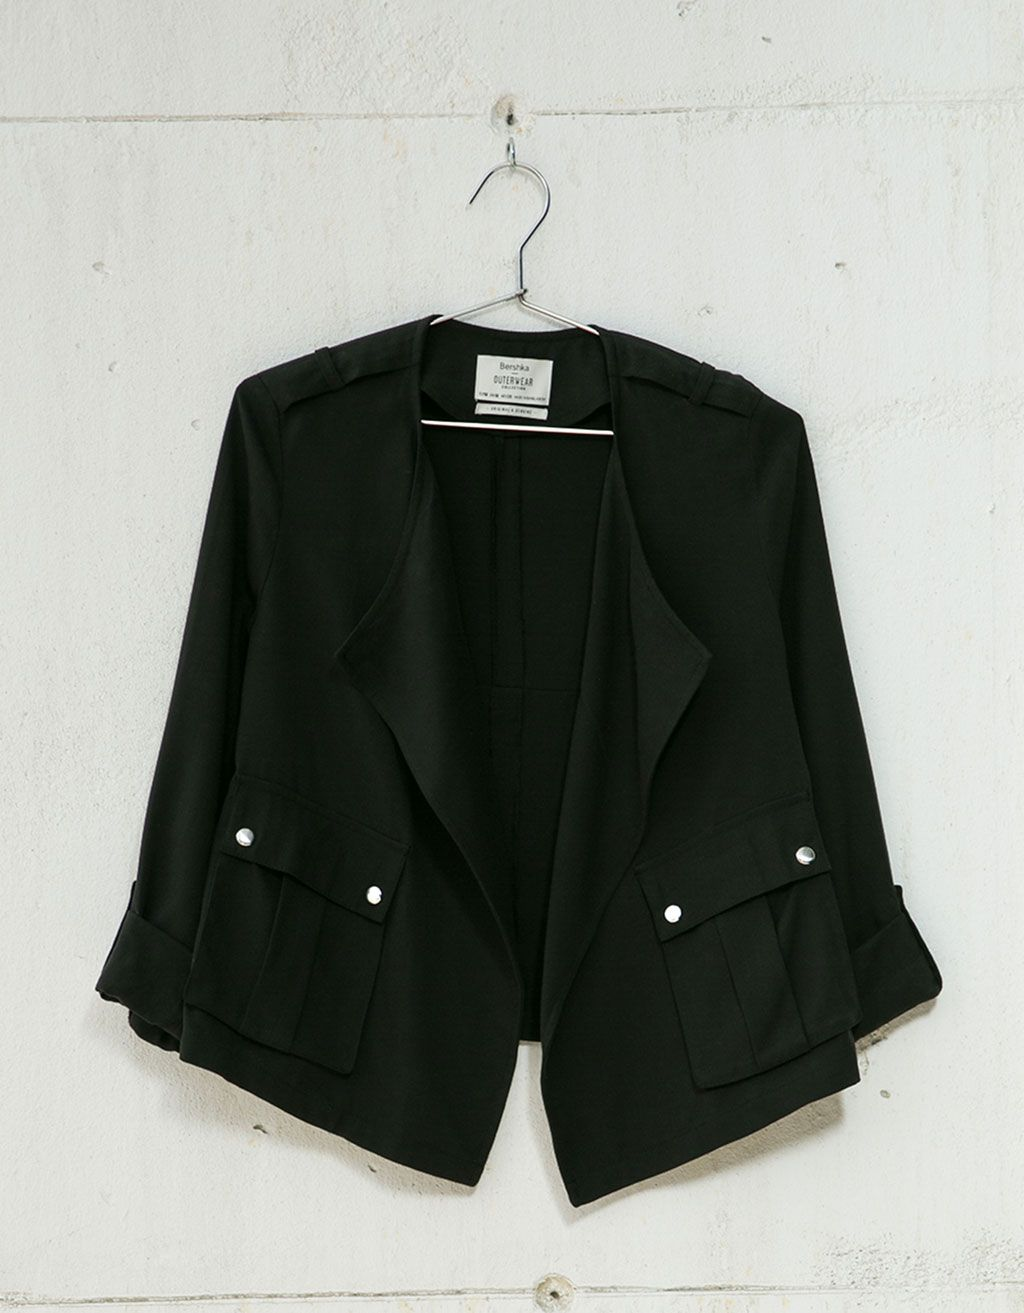 Draped jacket with utility pocket. Discover this and many